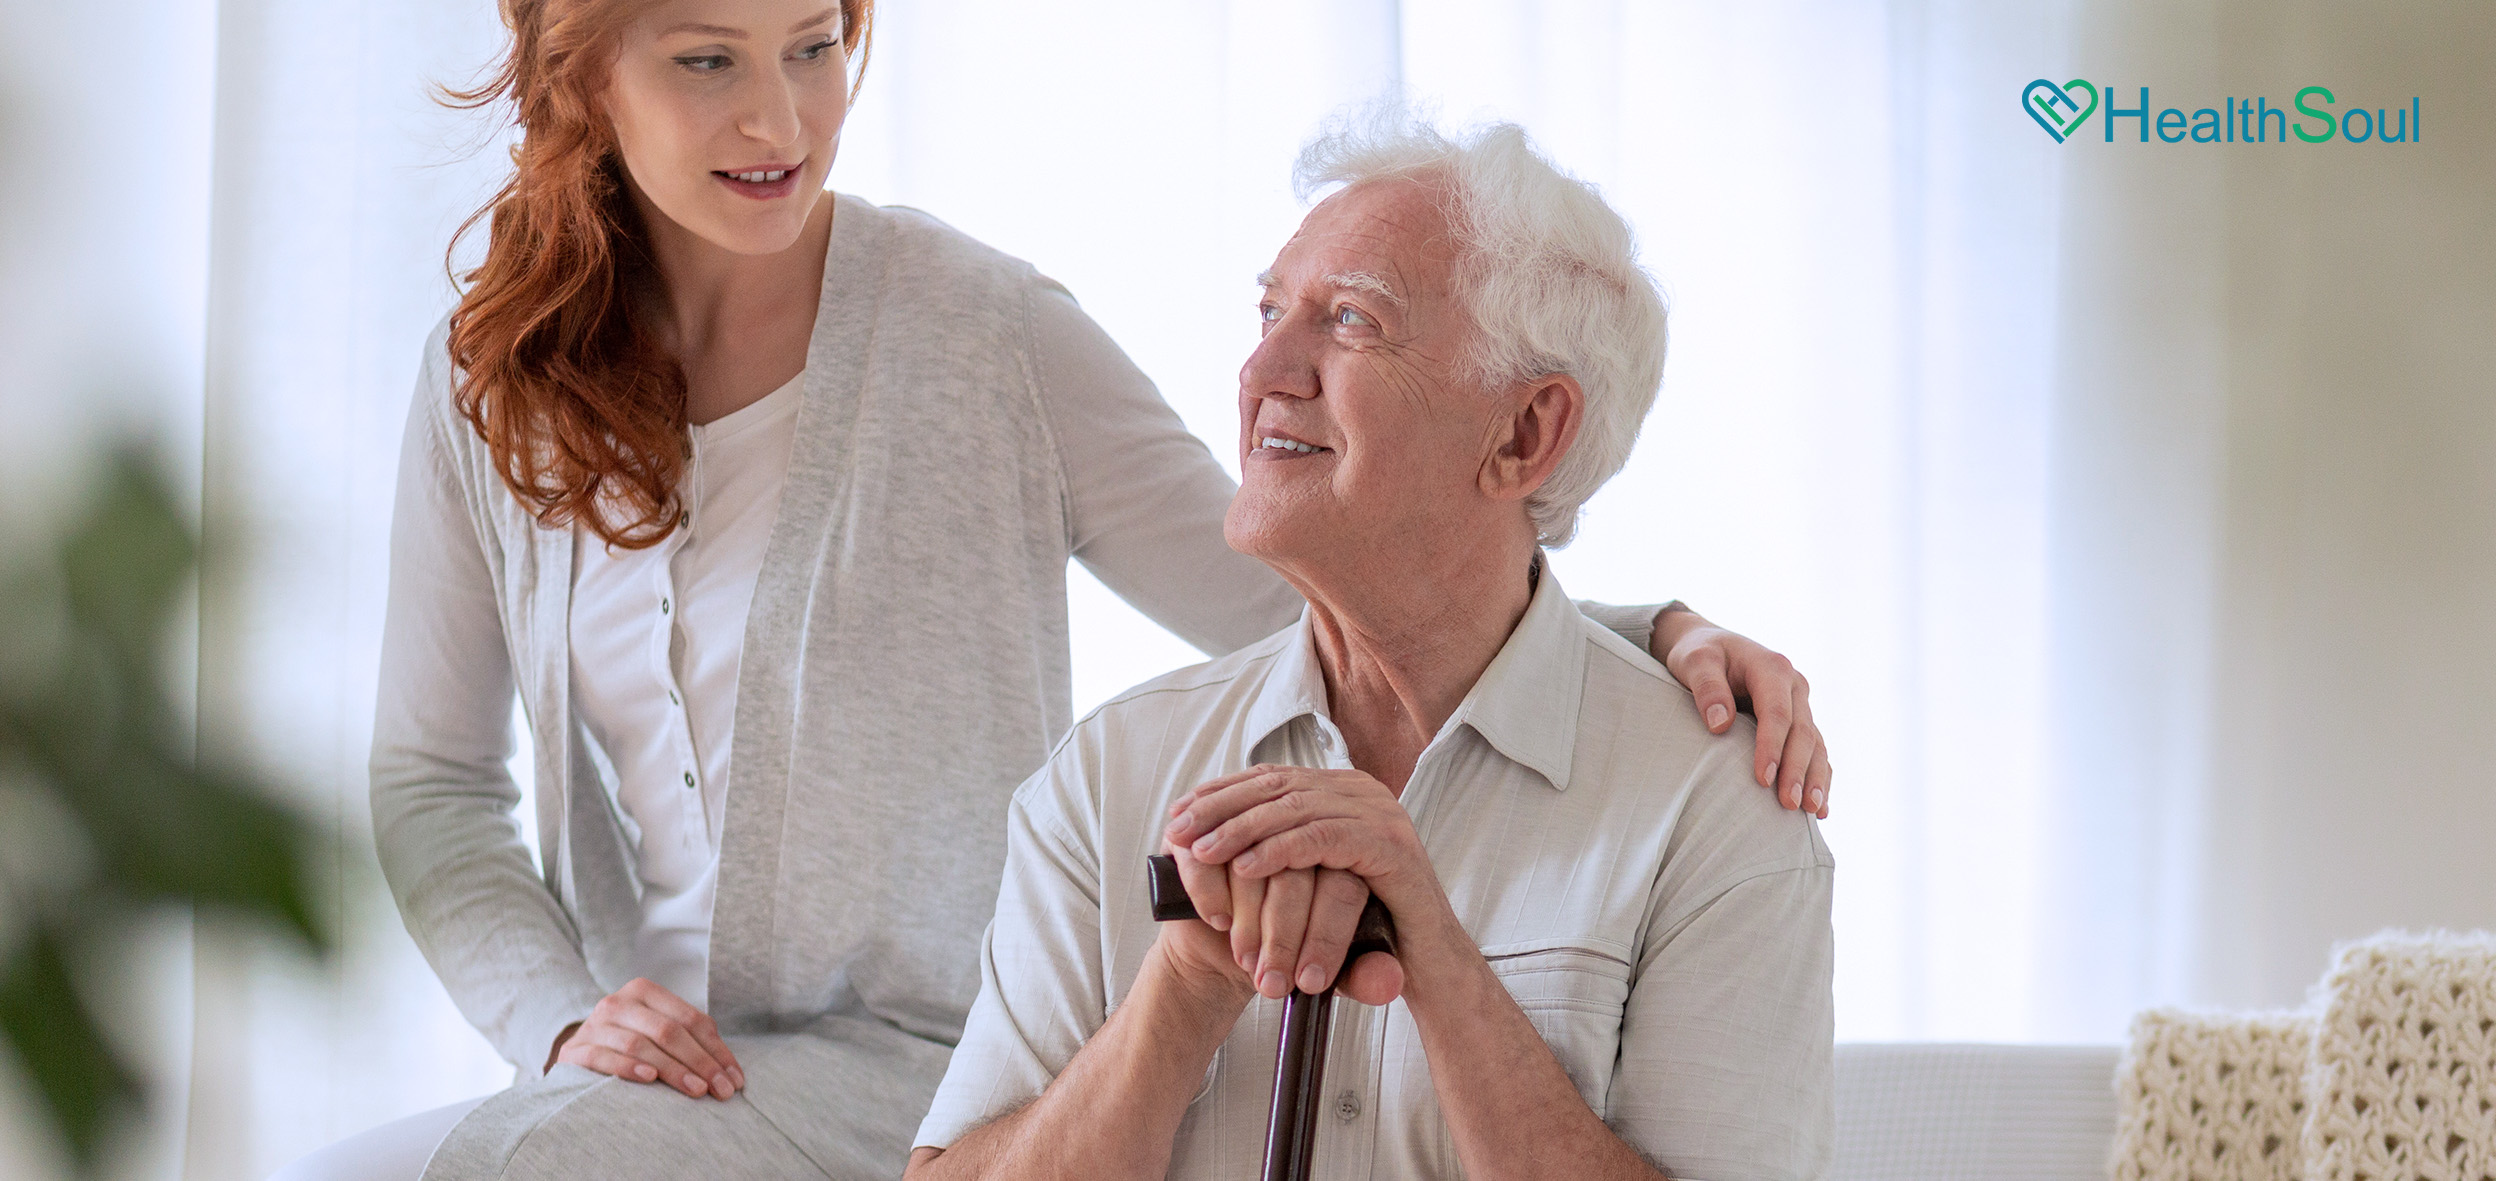 4 Common Older Adult Health Problems that Can Arise | HealthSoul